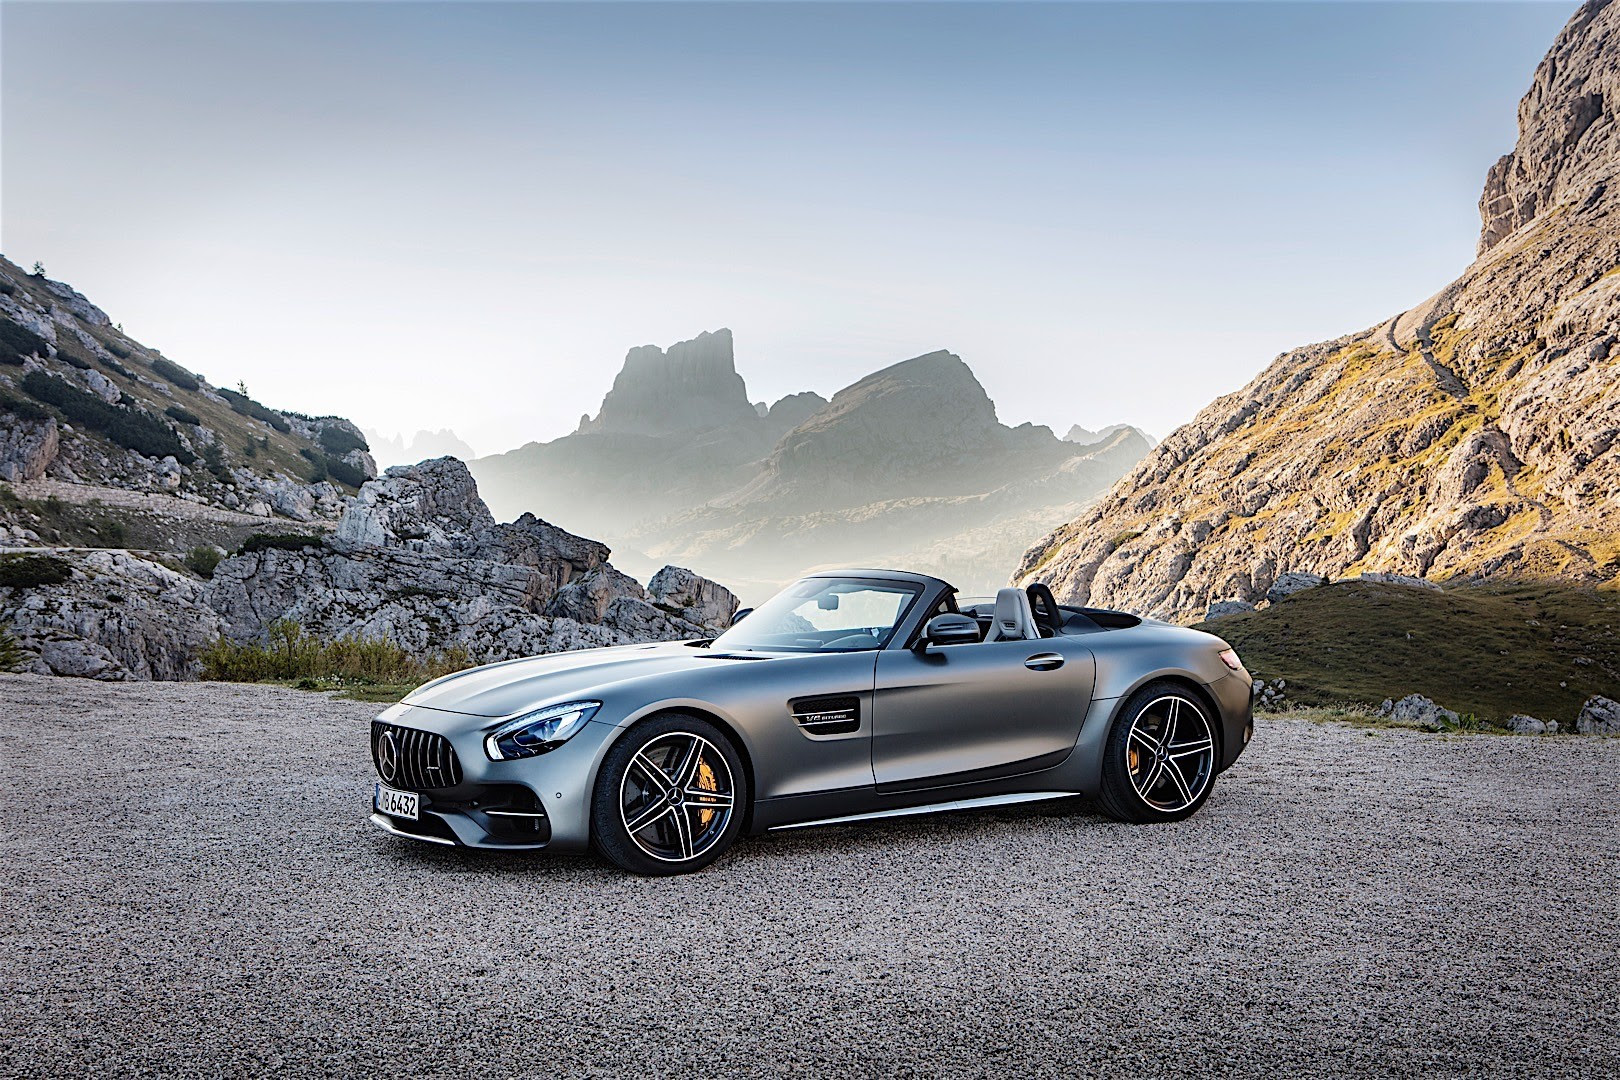 MERCEDES BENZ AMG GT C Roadster - 2016, 2017 - autoevolution